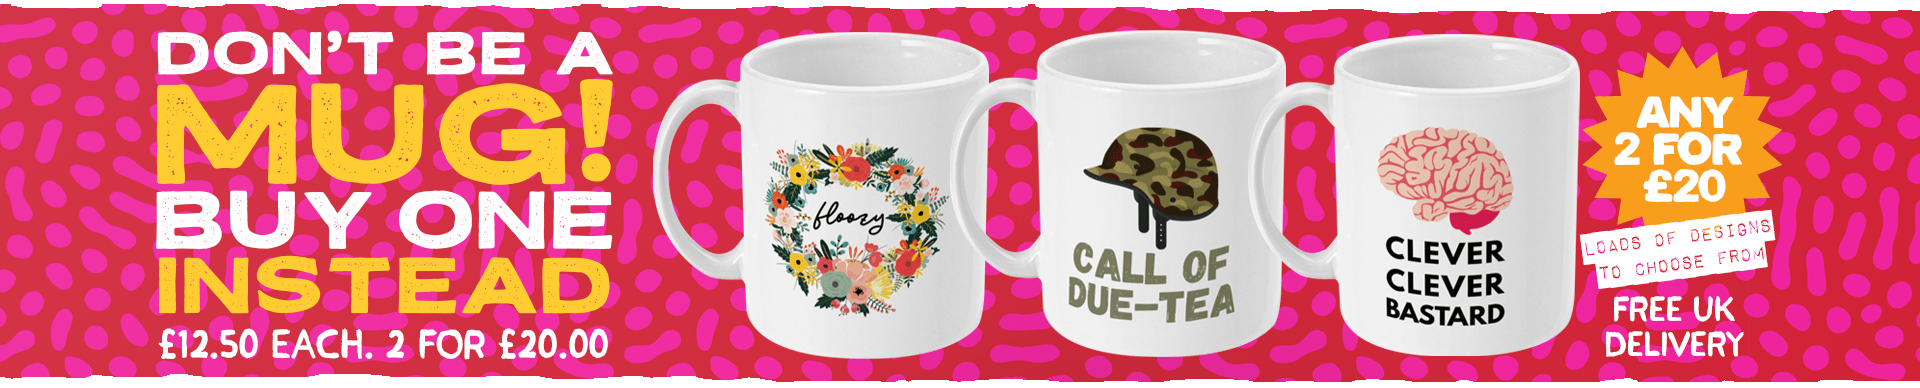 Banner displaying 3 mugs and righthand caption reading 'Don't Be a Mug! Buy One Instead £12.50 Each. 2 For £20.00' and lefthand icons reading 'Any 2 for £20 Loads of Designs To Choose From Free UK Delivery' with pink splotchy background